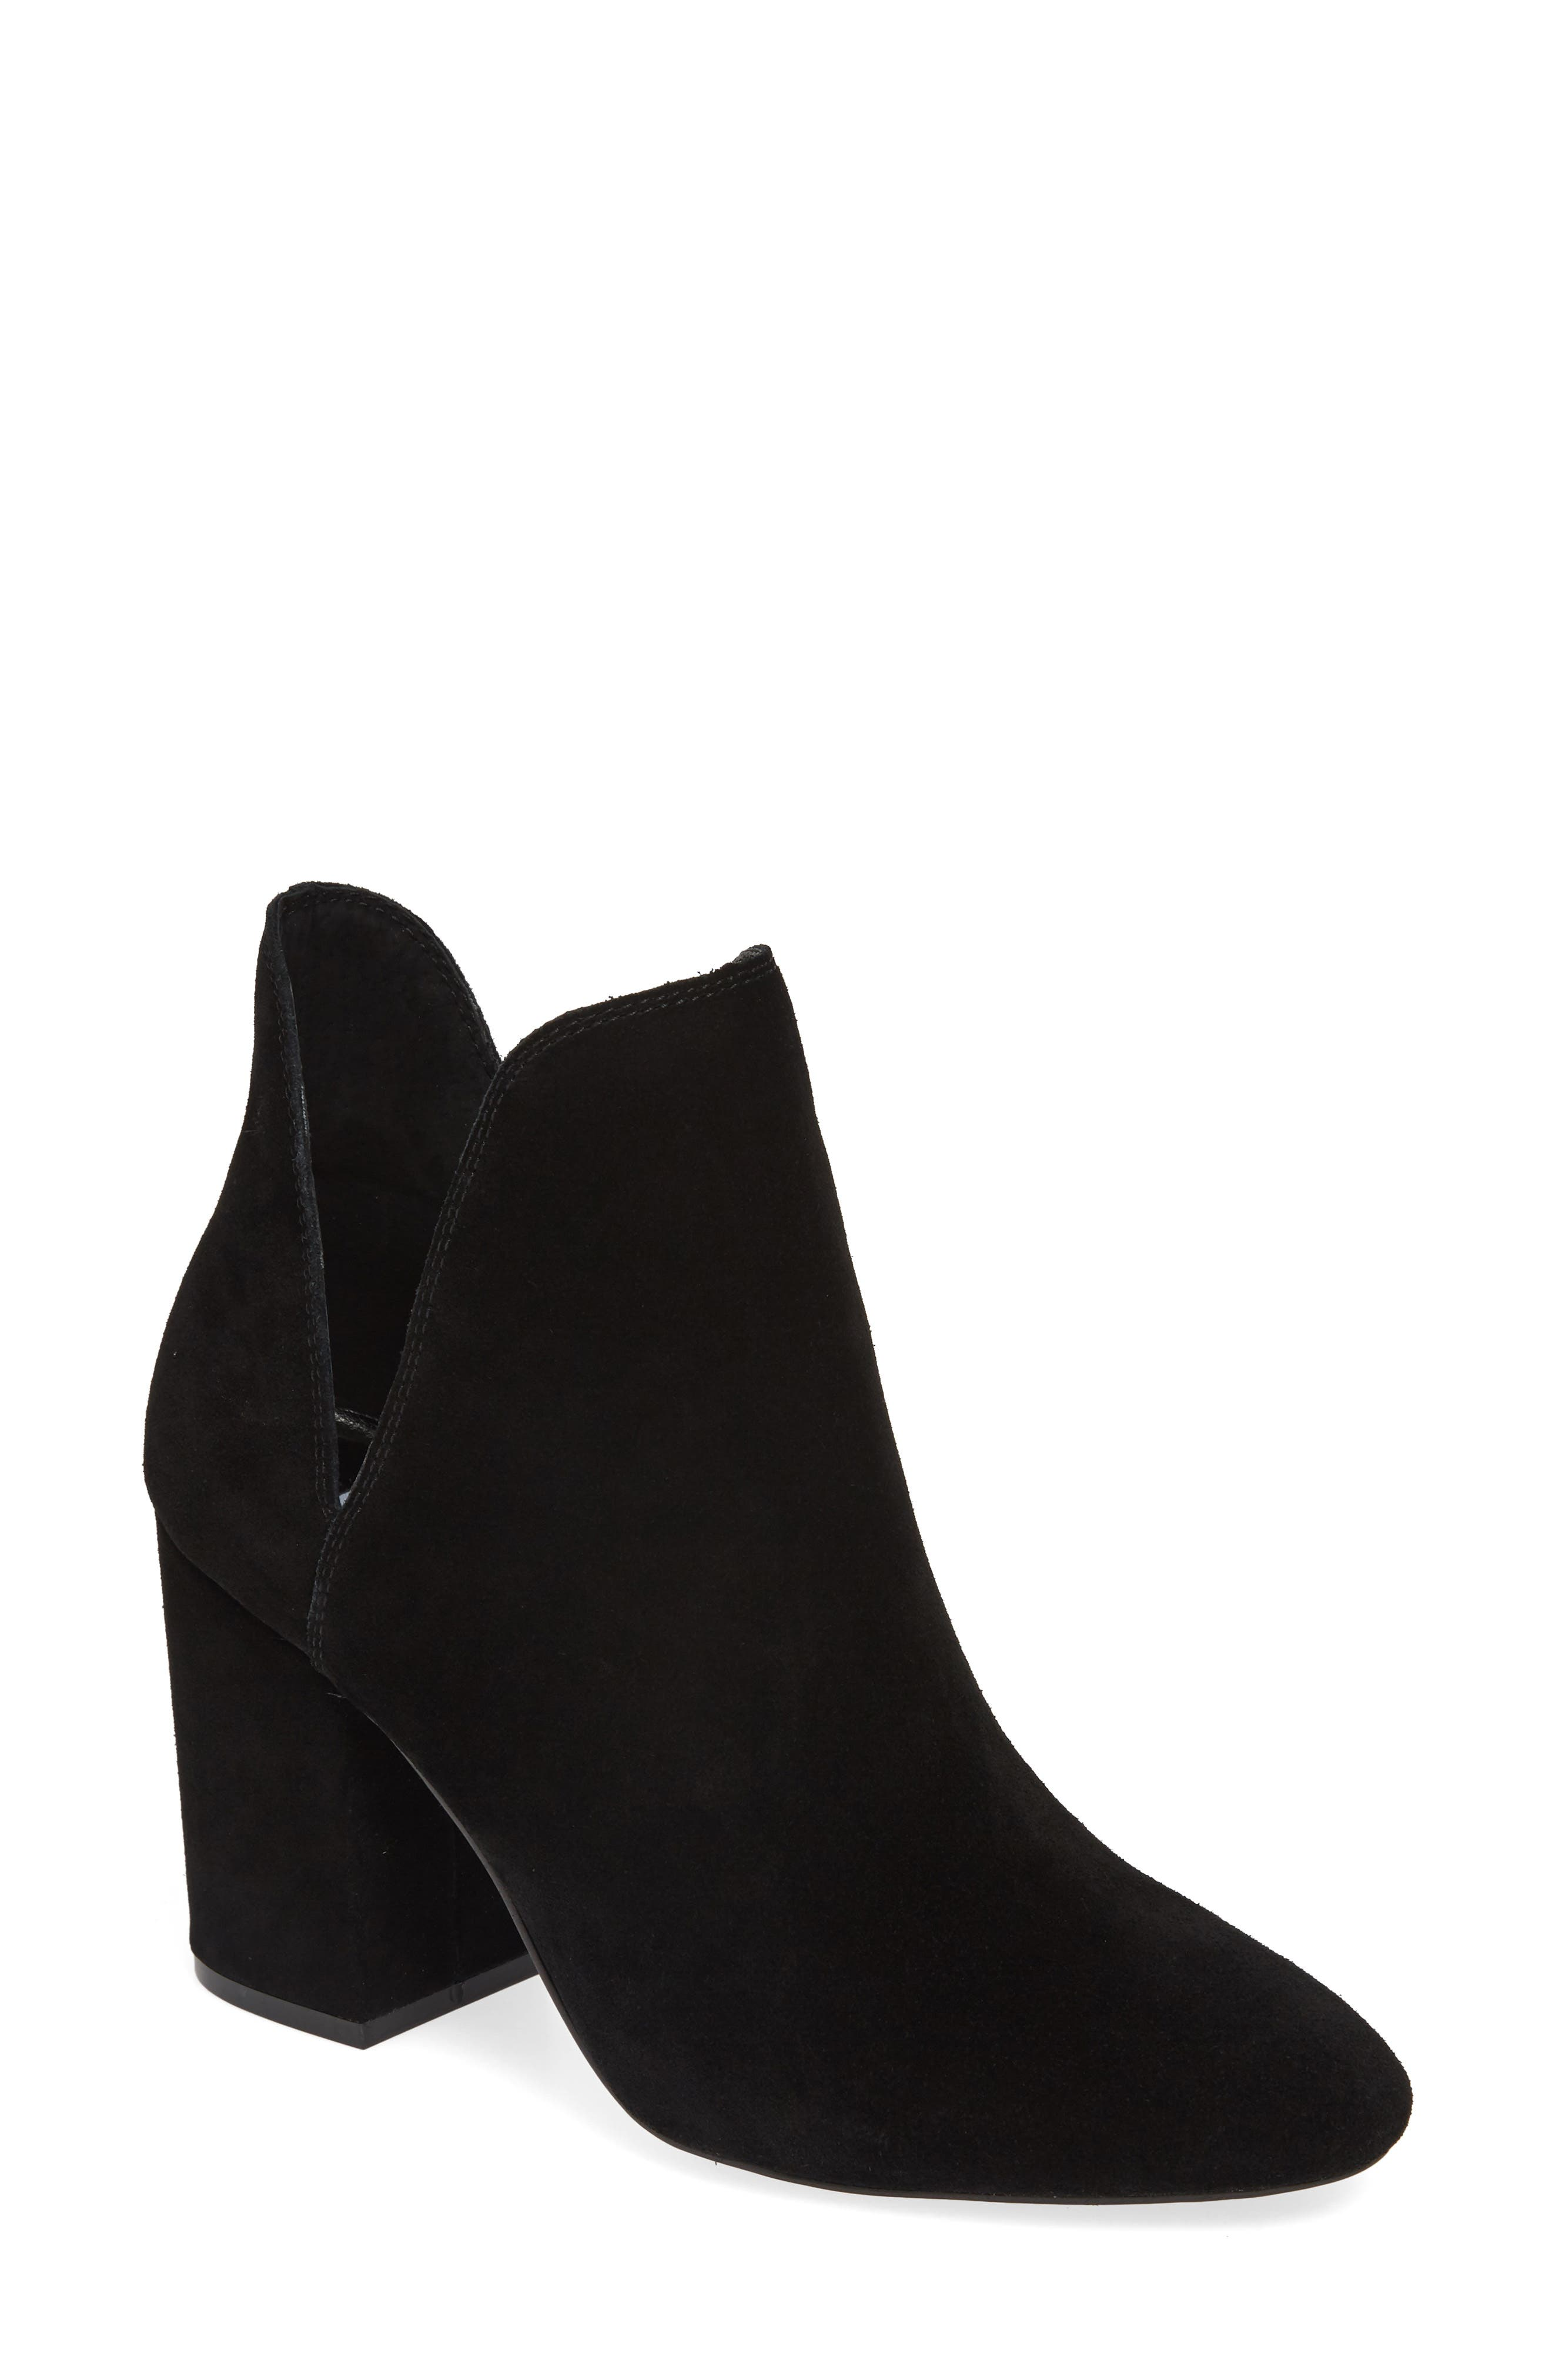 STEVE MADDEN Rookie Bootie, Main, color, BLACK SUEDE